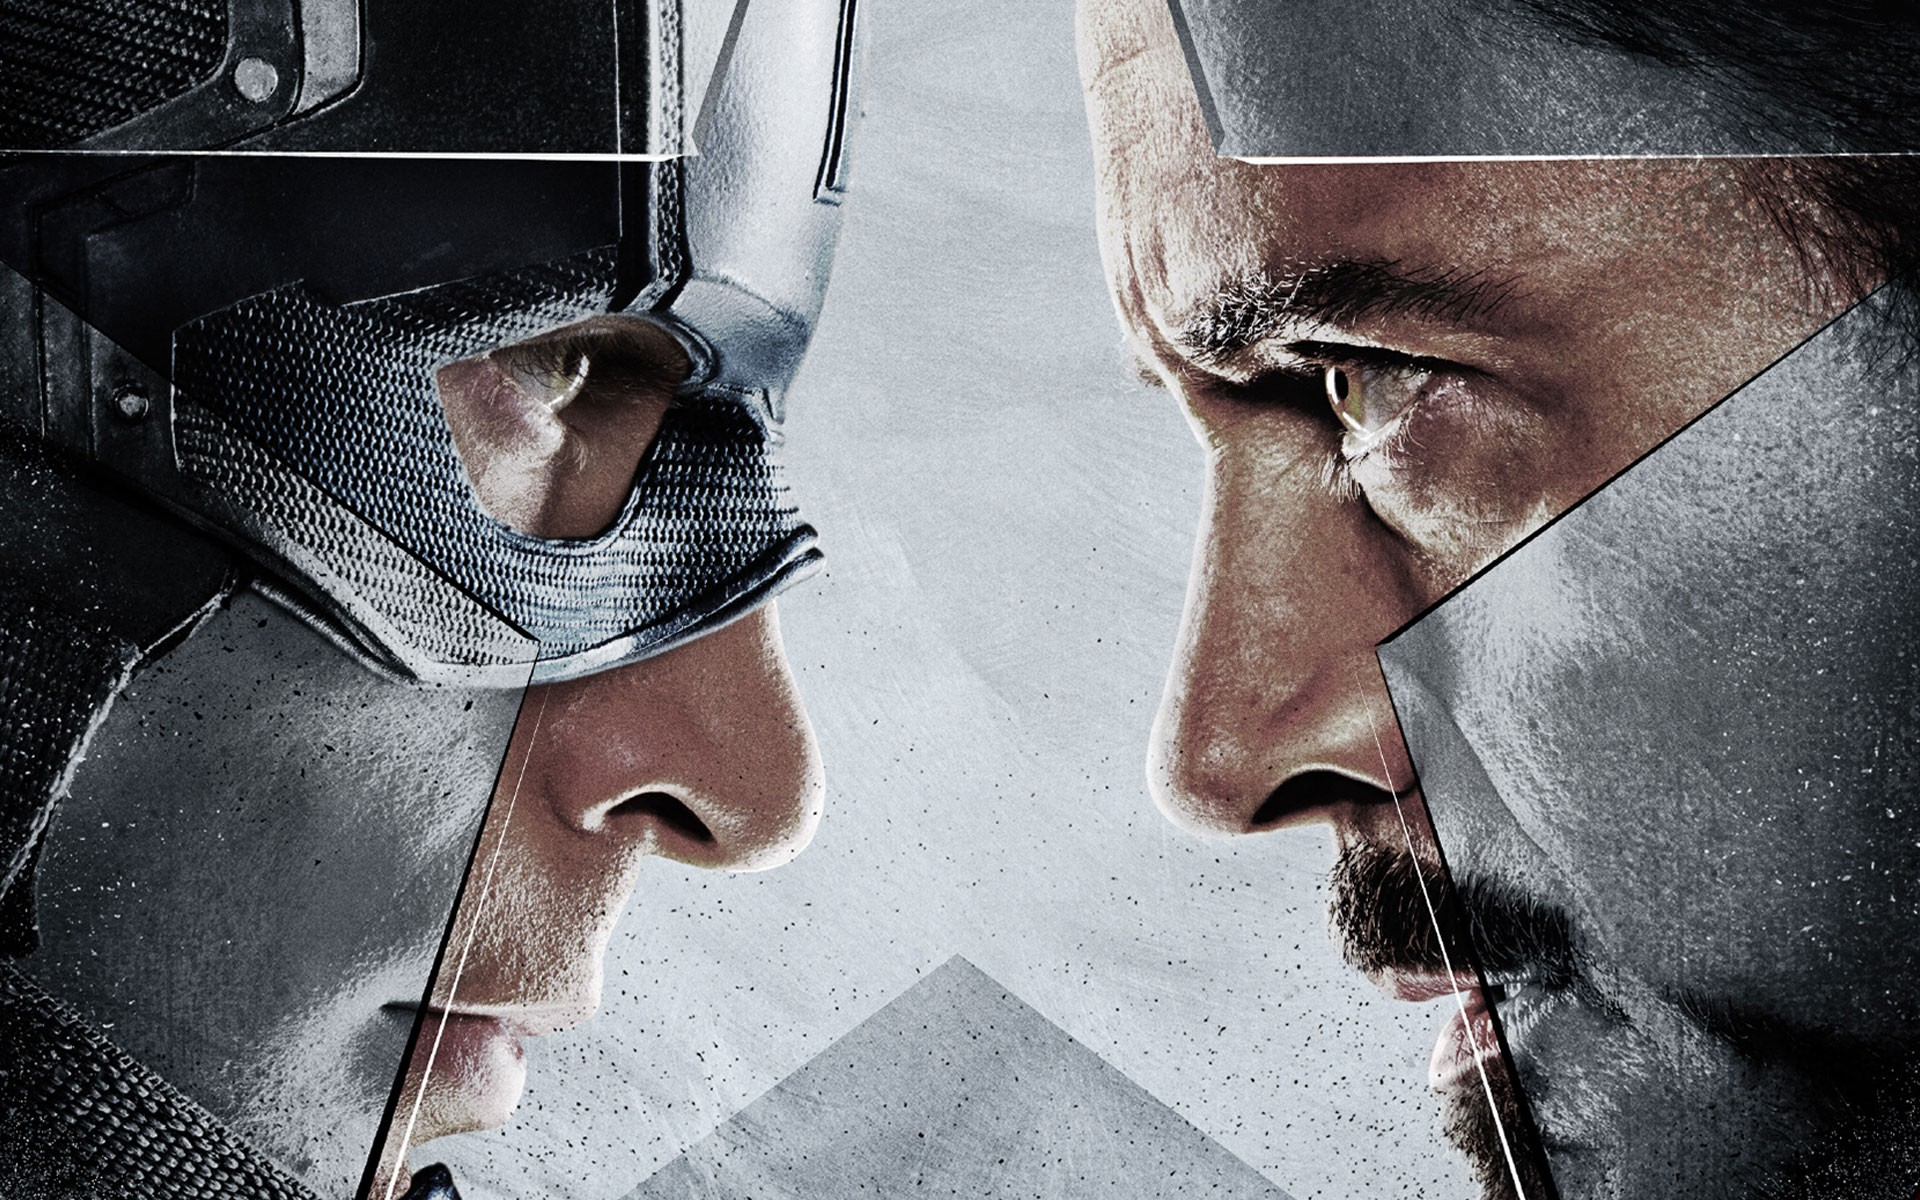 Captain America Civil War Wallpaper Download Free Beautiful Full